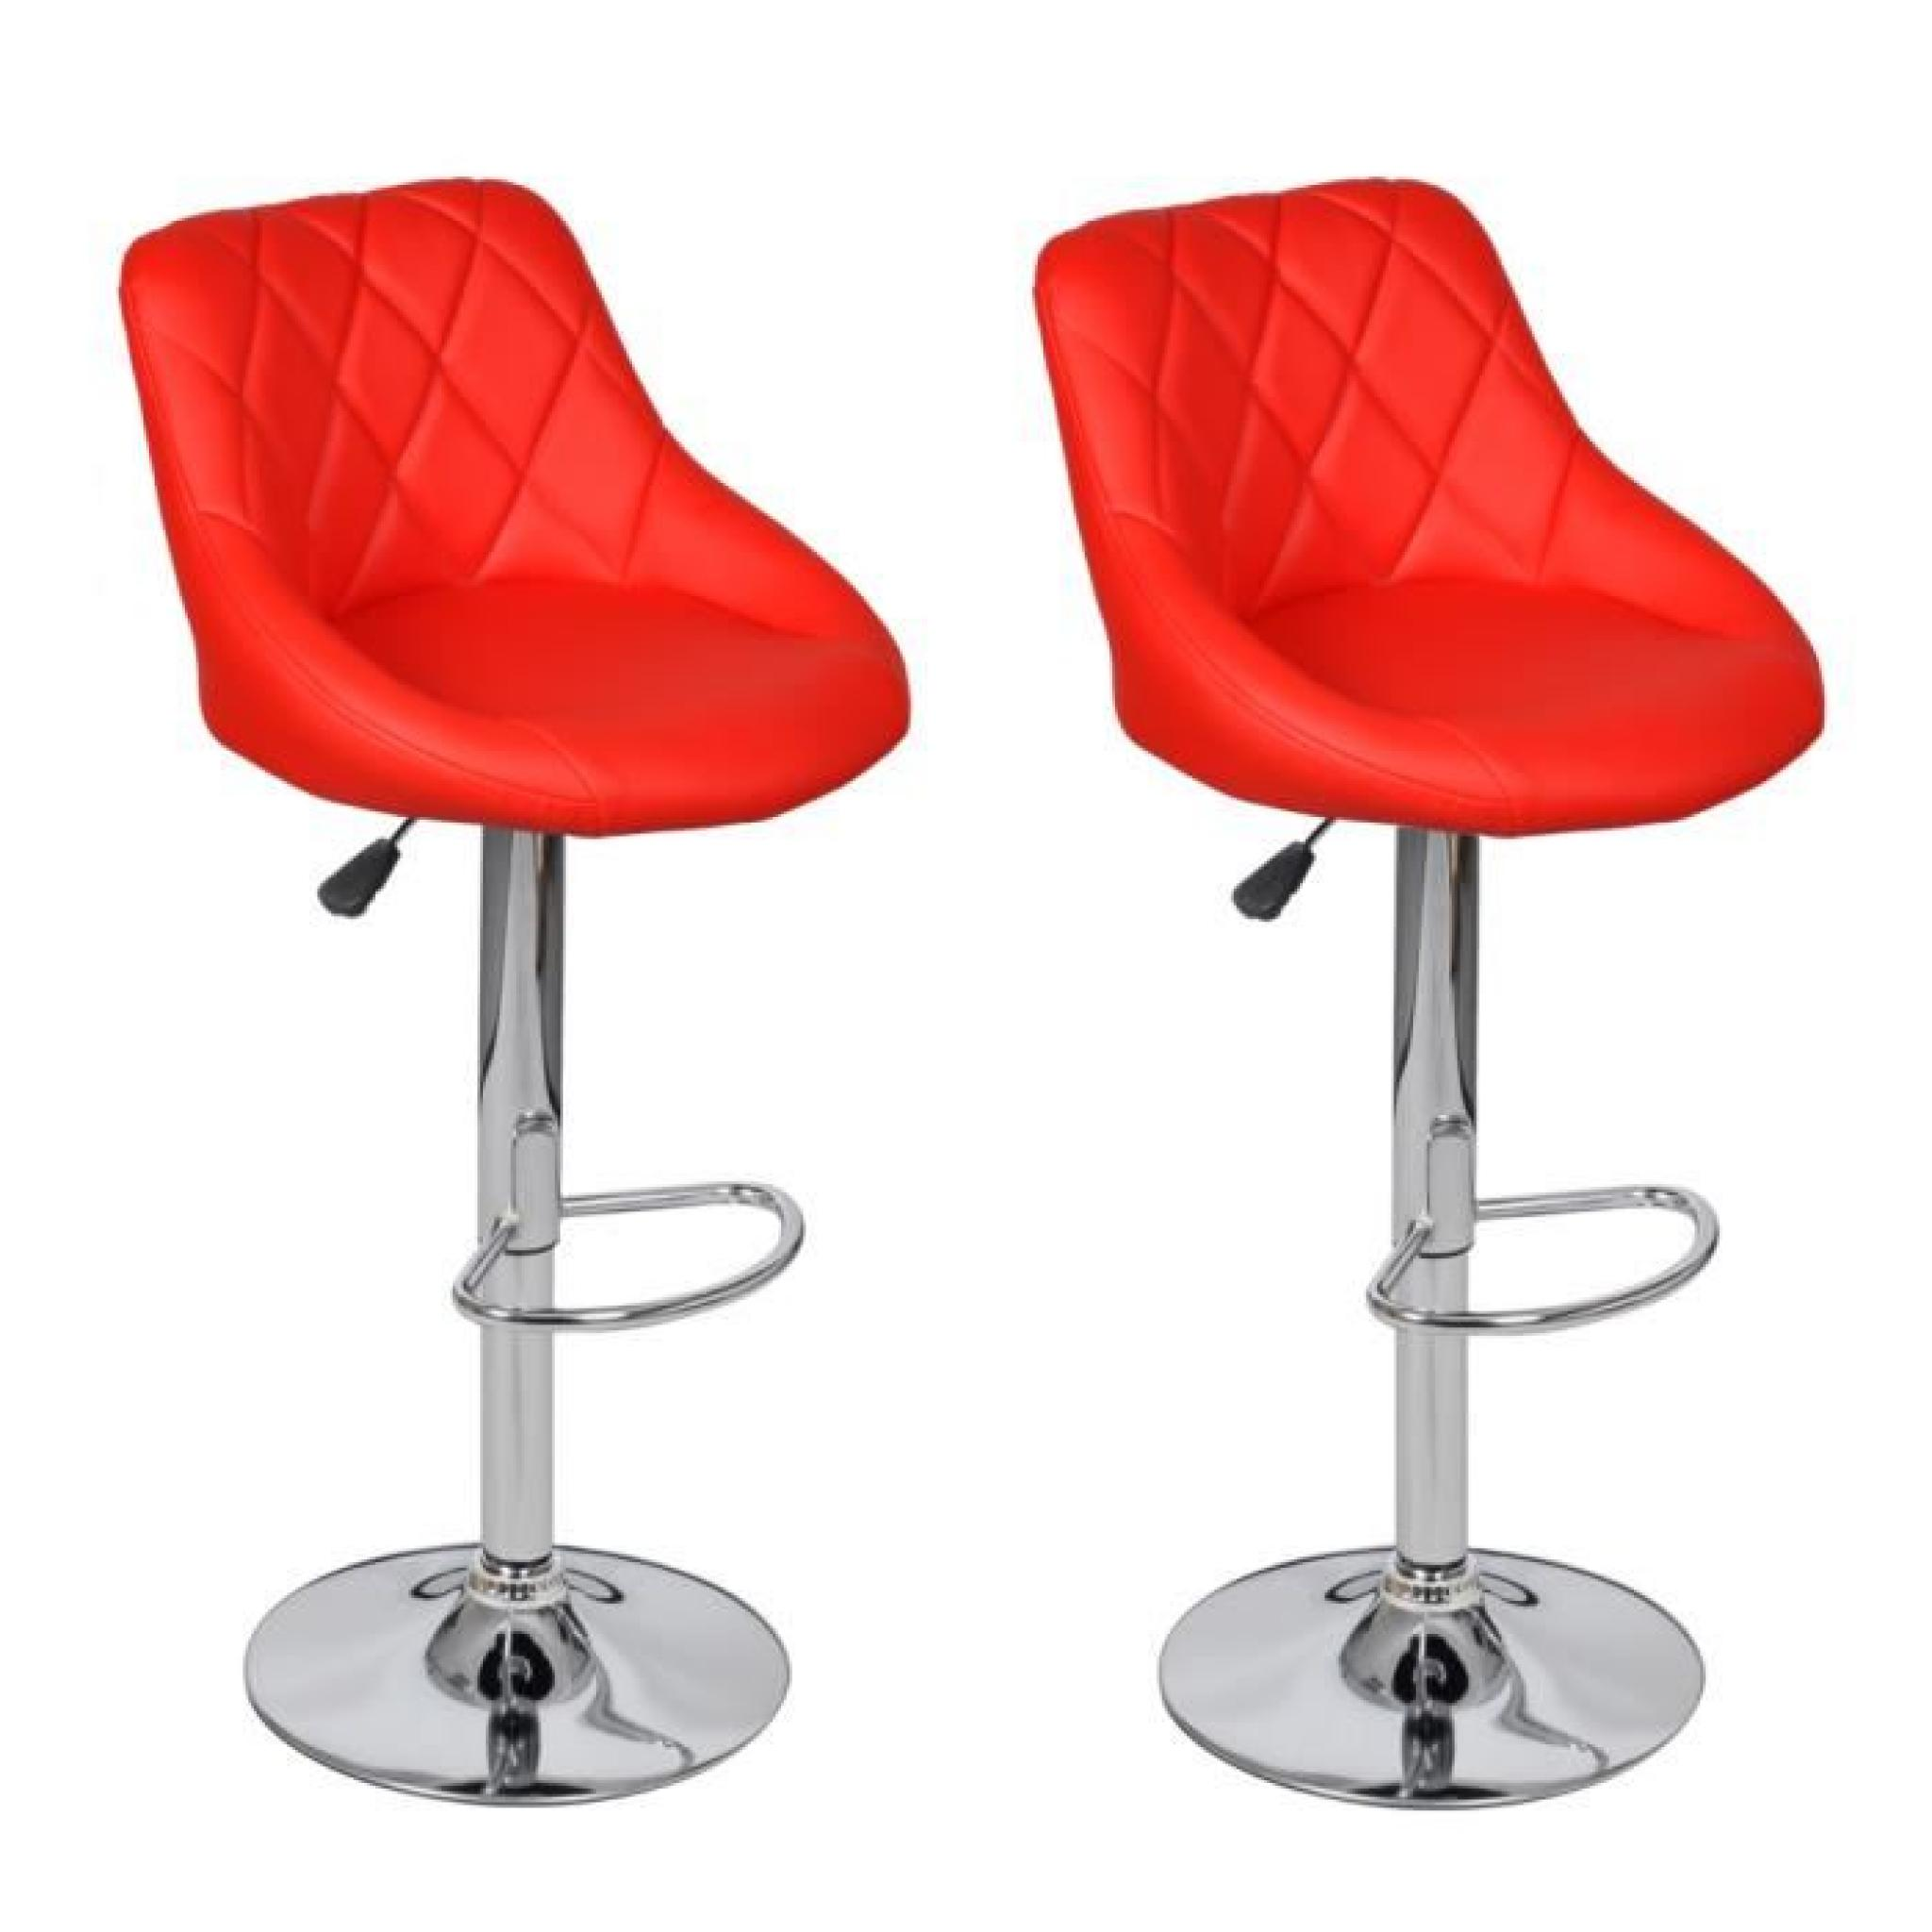 lot de 2 tabourets de bar rouges design moderne achat. Black Bedroom Furniture Sets. Home Design Ideas